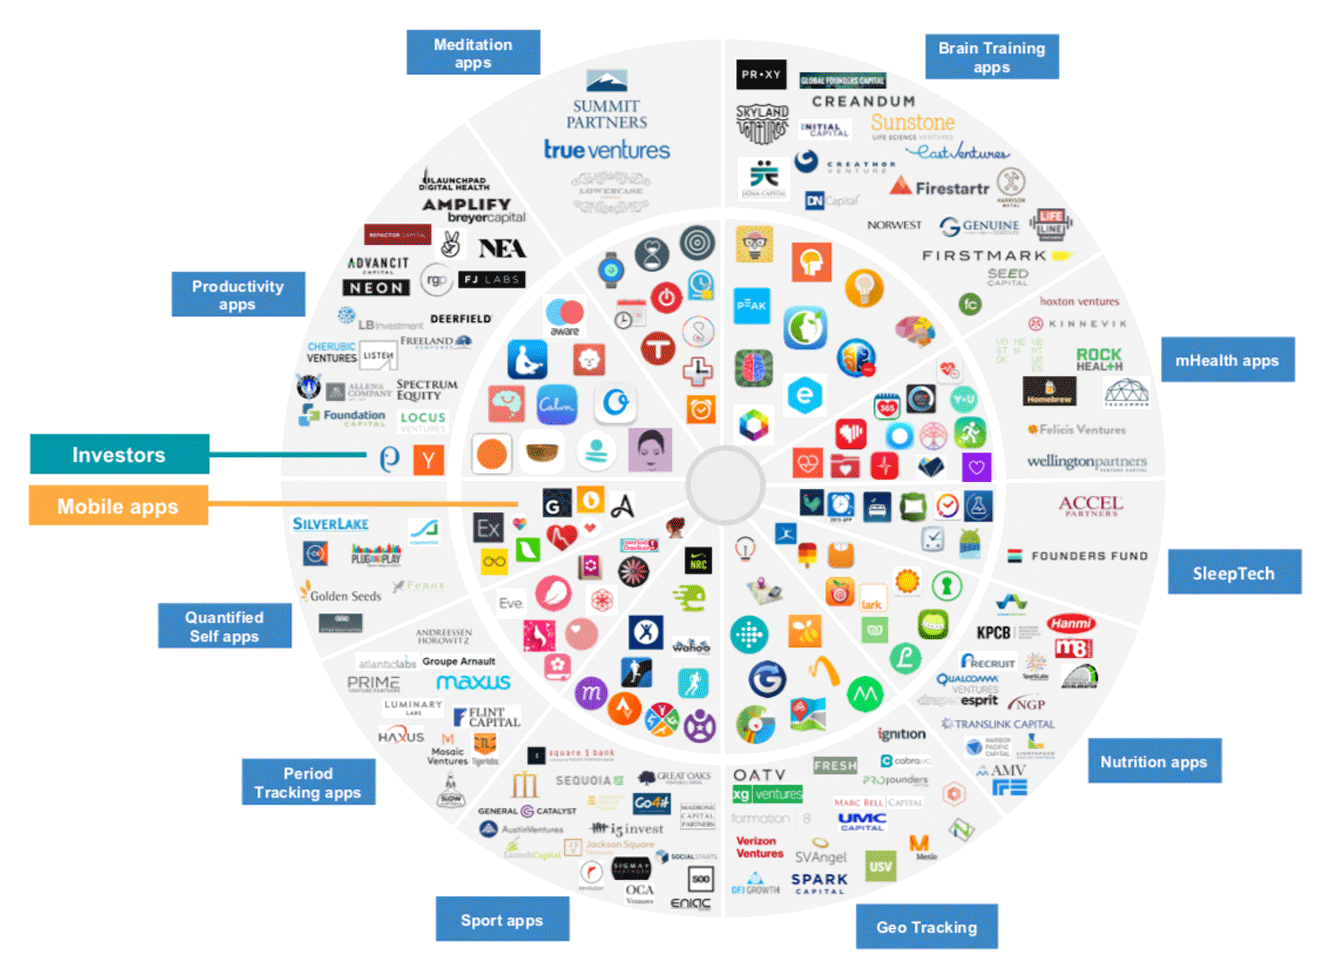 The landscape of healthcare companies including mHealth apps, meditation apps, and nutrition apps that received rich investment.